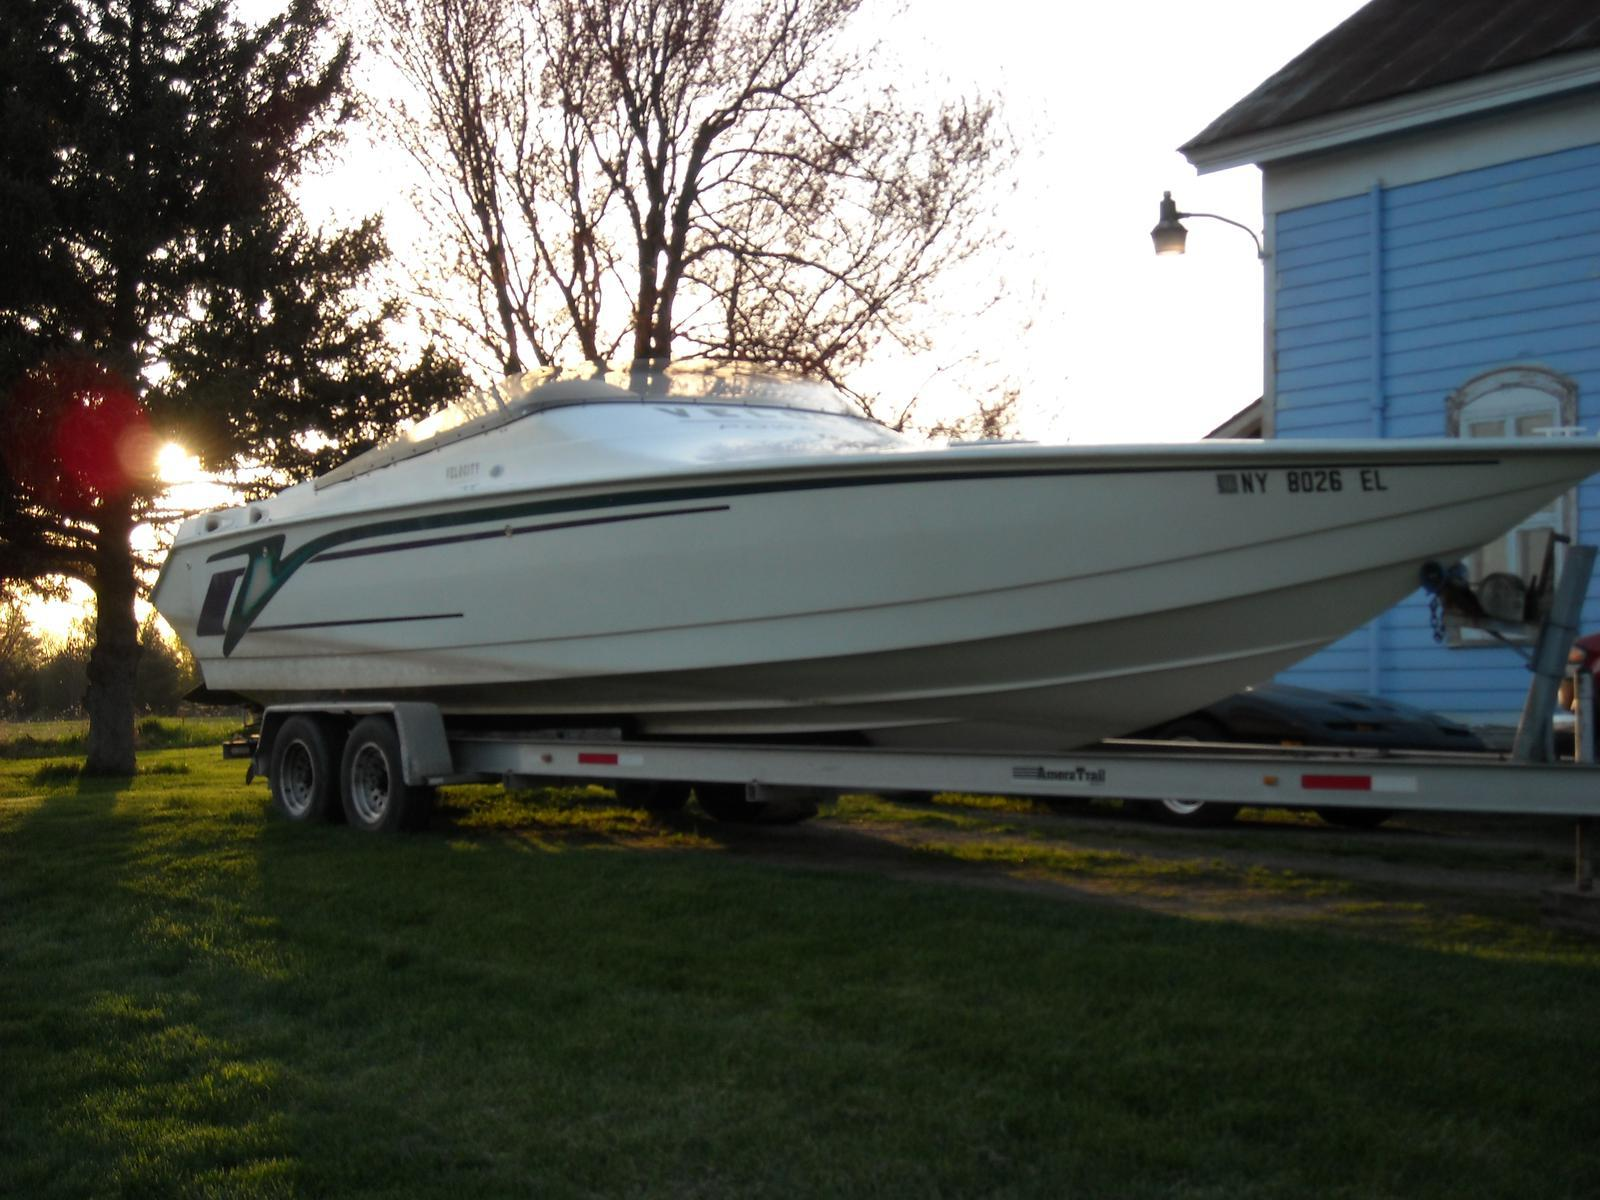 USED 1999 Velocity Powerboats 32 - Hutchinson's Boat Works